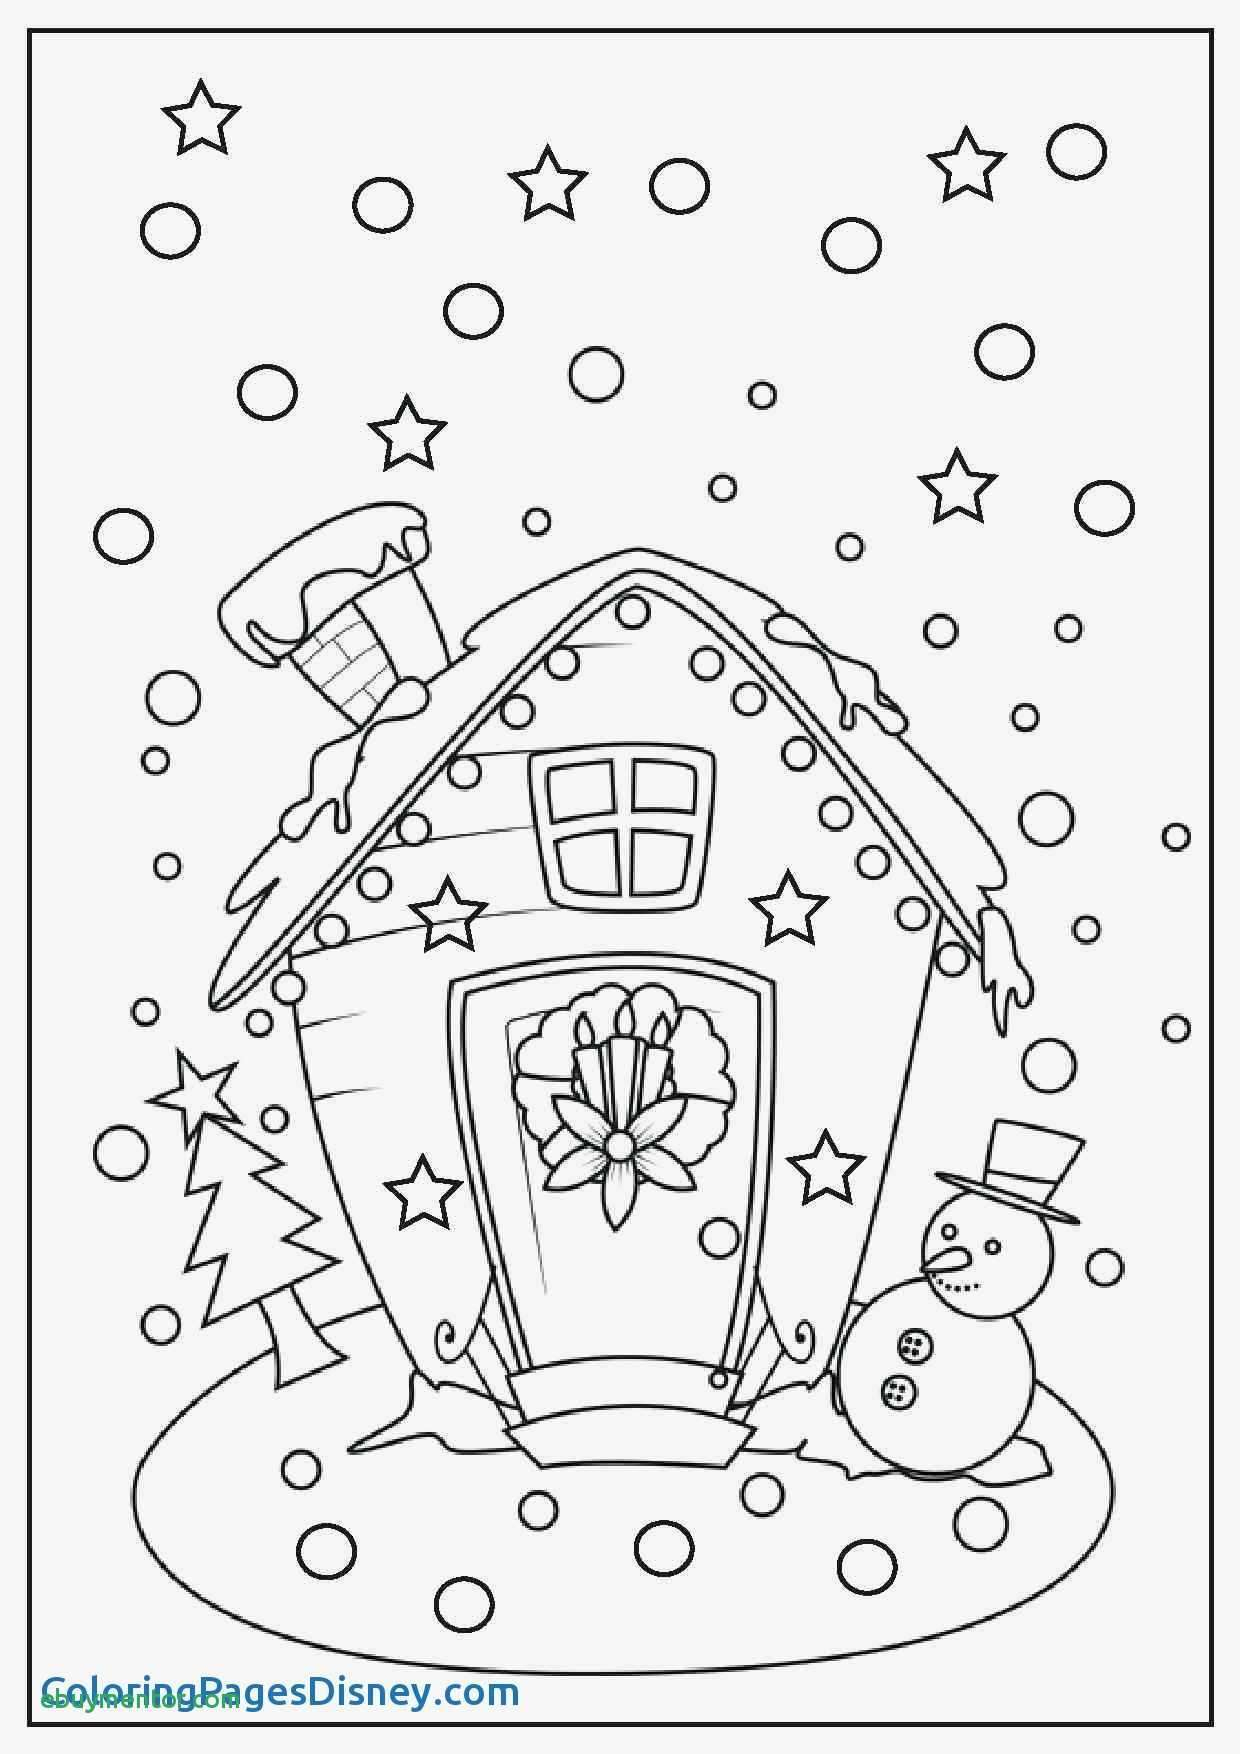 coloring pages greeting cards Download-Christmas Coloring Pages for Children Cool Coloring Printables 0d – Fun Time – Coloring Sheets Collection 17-o